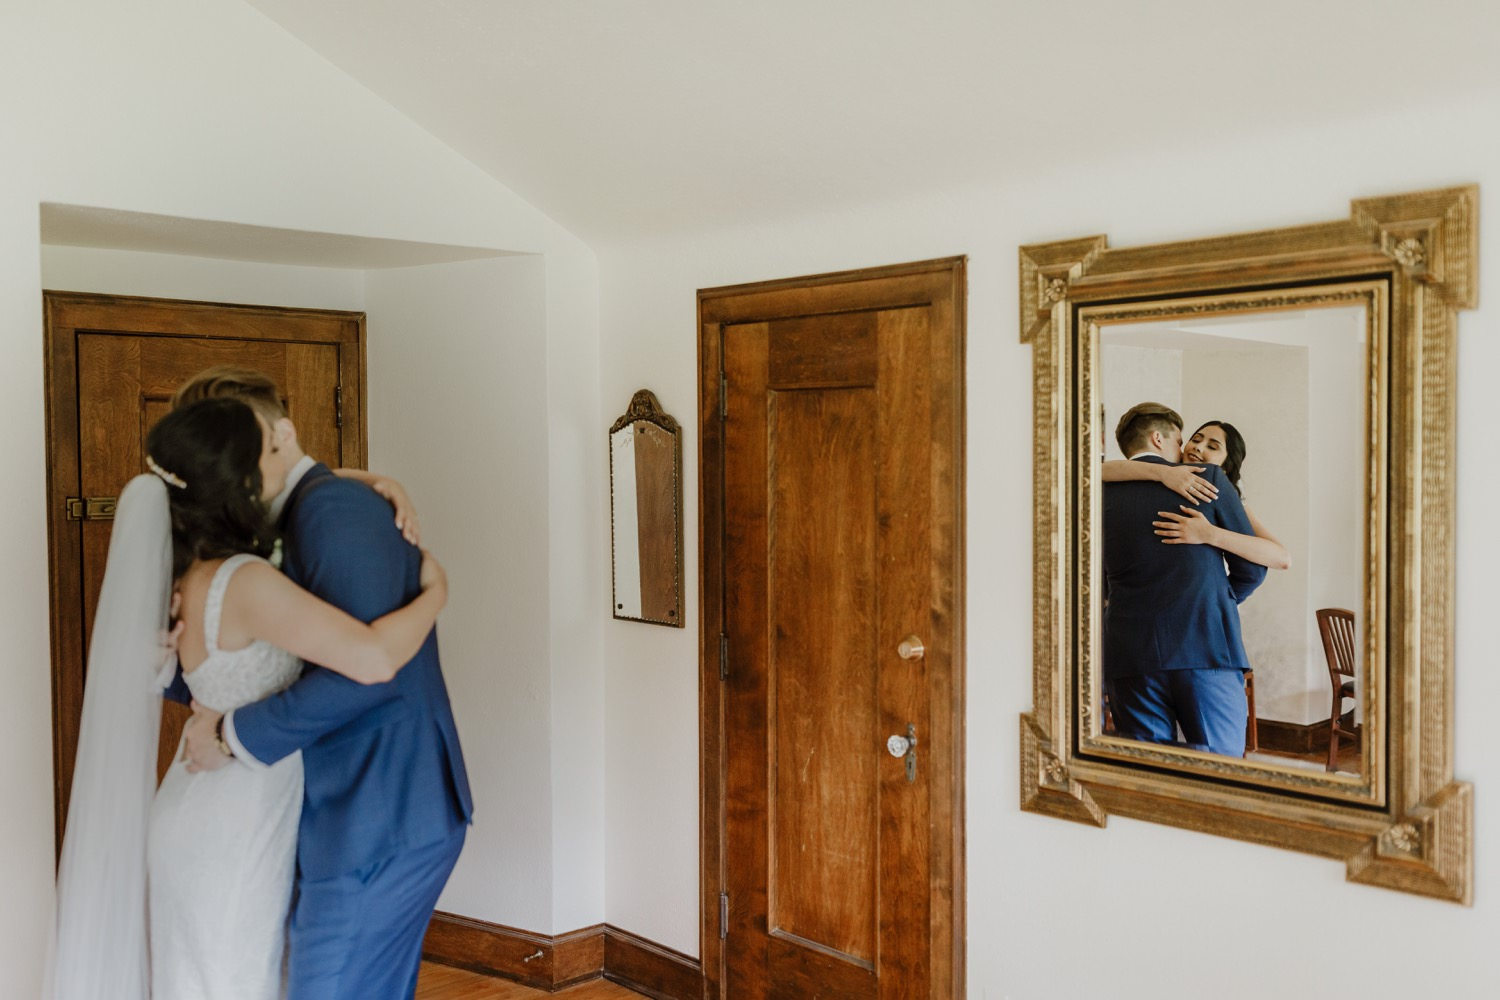 Bride and groom embrace in the intimate moment after the wedding ceremony at Redfield Estate